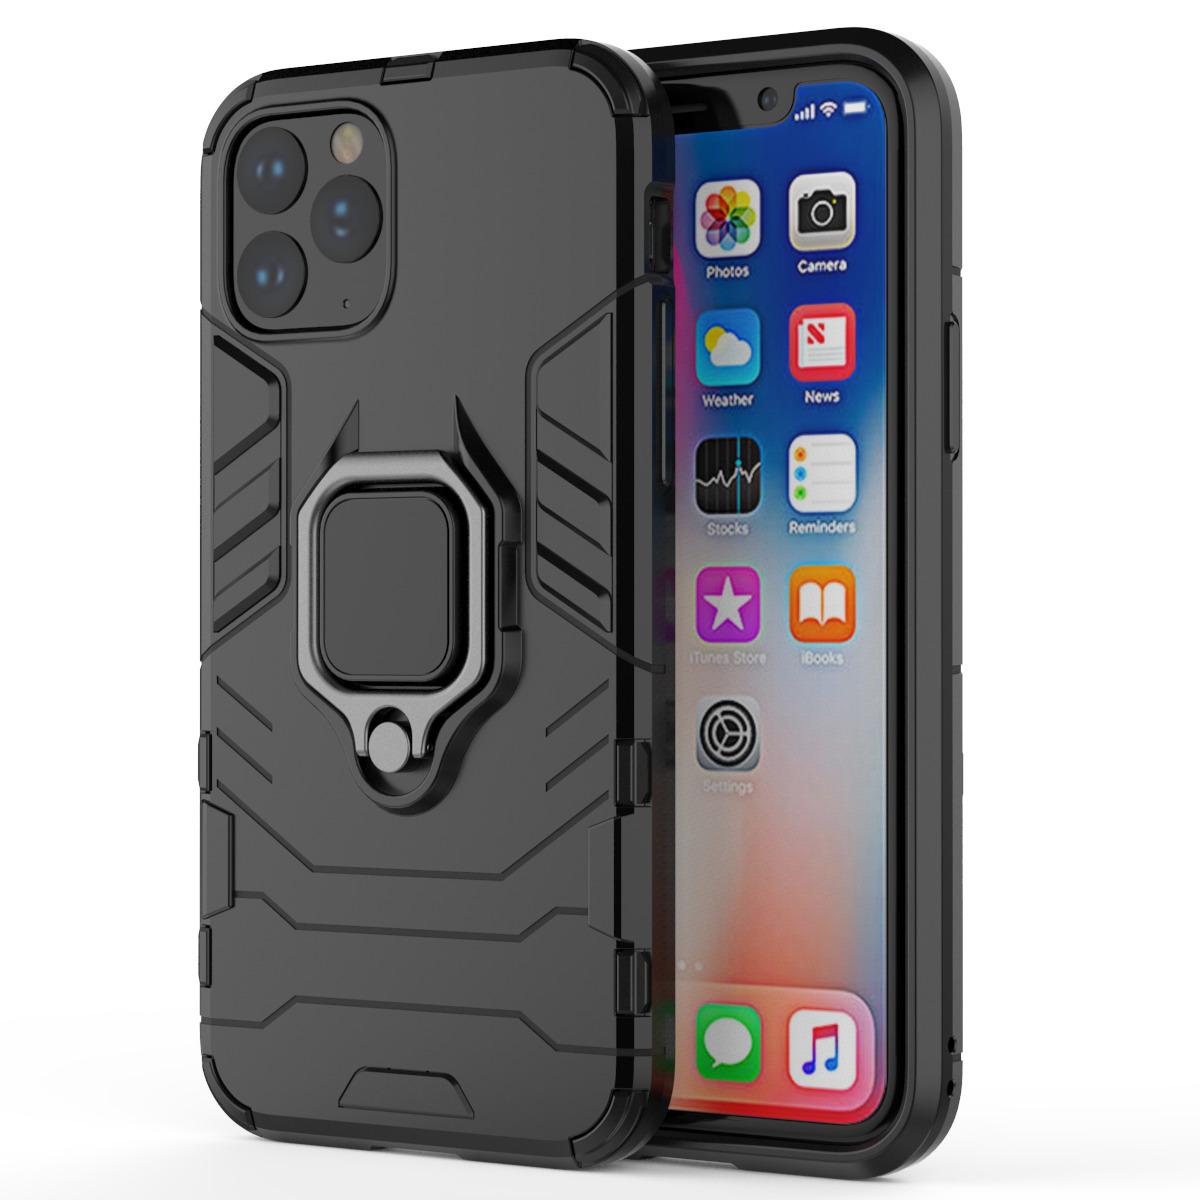 For New iPhone X XI 5.8 6.1 6.5 2019 Slim Shockproof Armor Hybrid Rubber Hard magnet car Stand Cover Case for new iphone